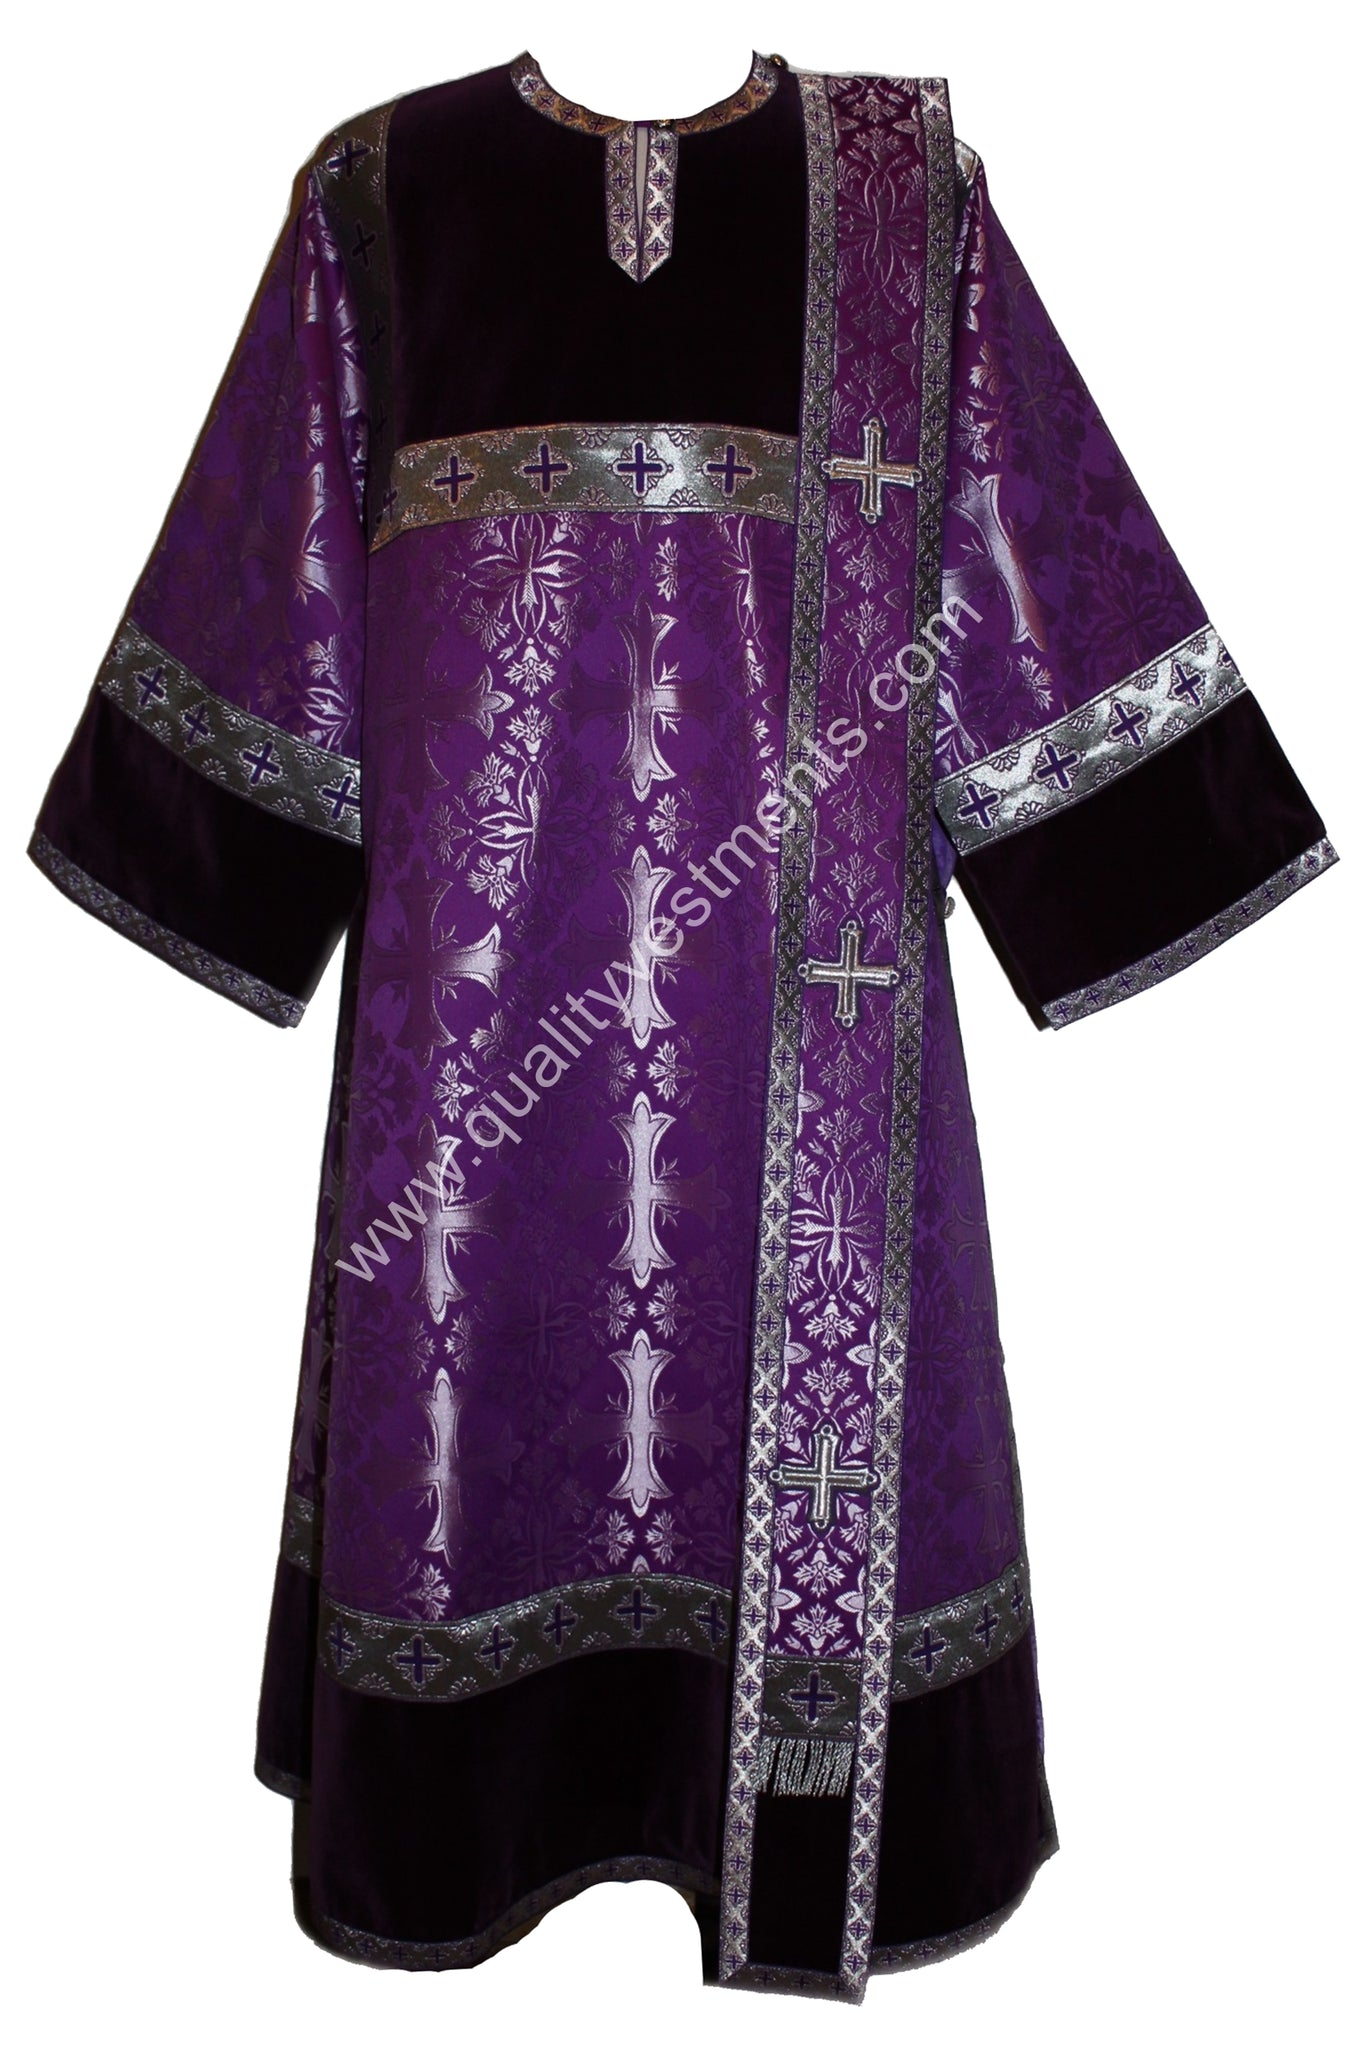 Purple Deacon Vestments with velvet Nonmetallic Brocade Cross pattern TO ORDER